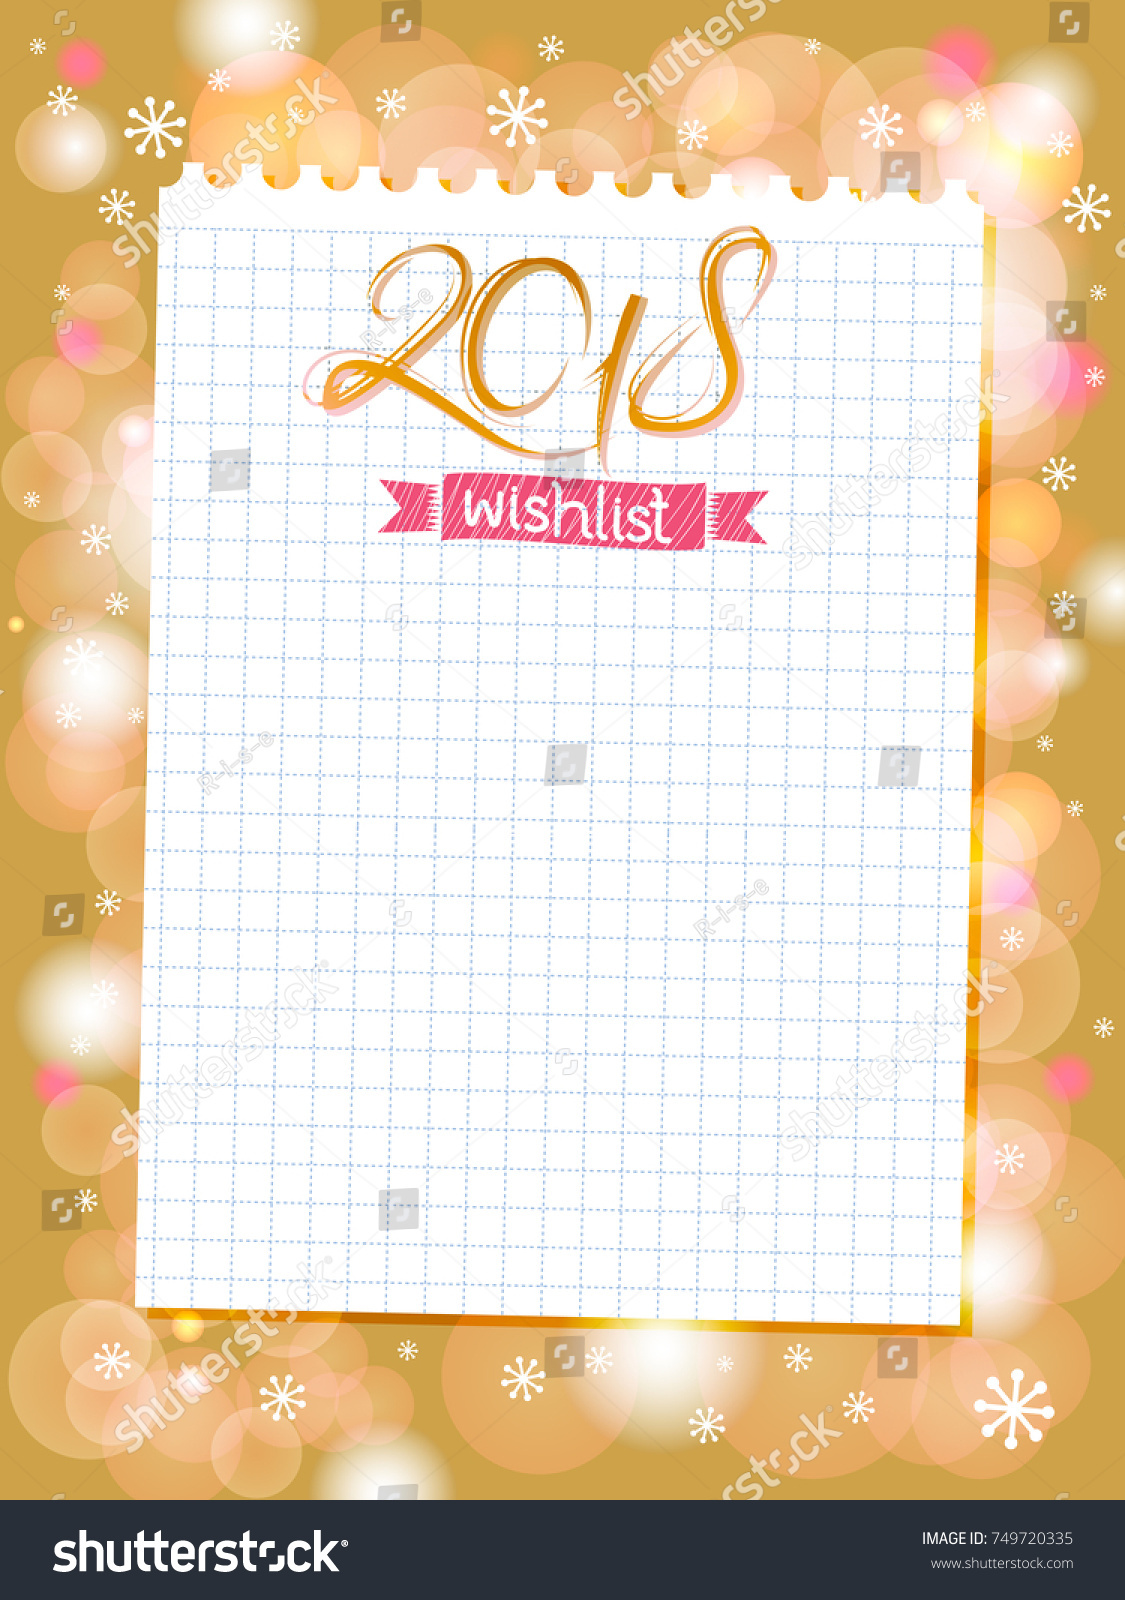 stylish inspirational wishlist with note paper and golden festive lights vector holiday background christmas